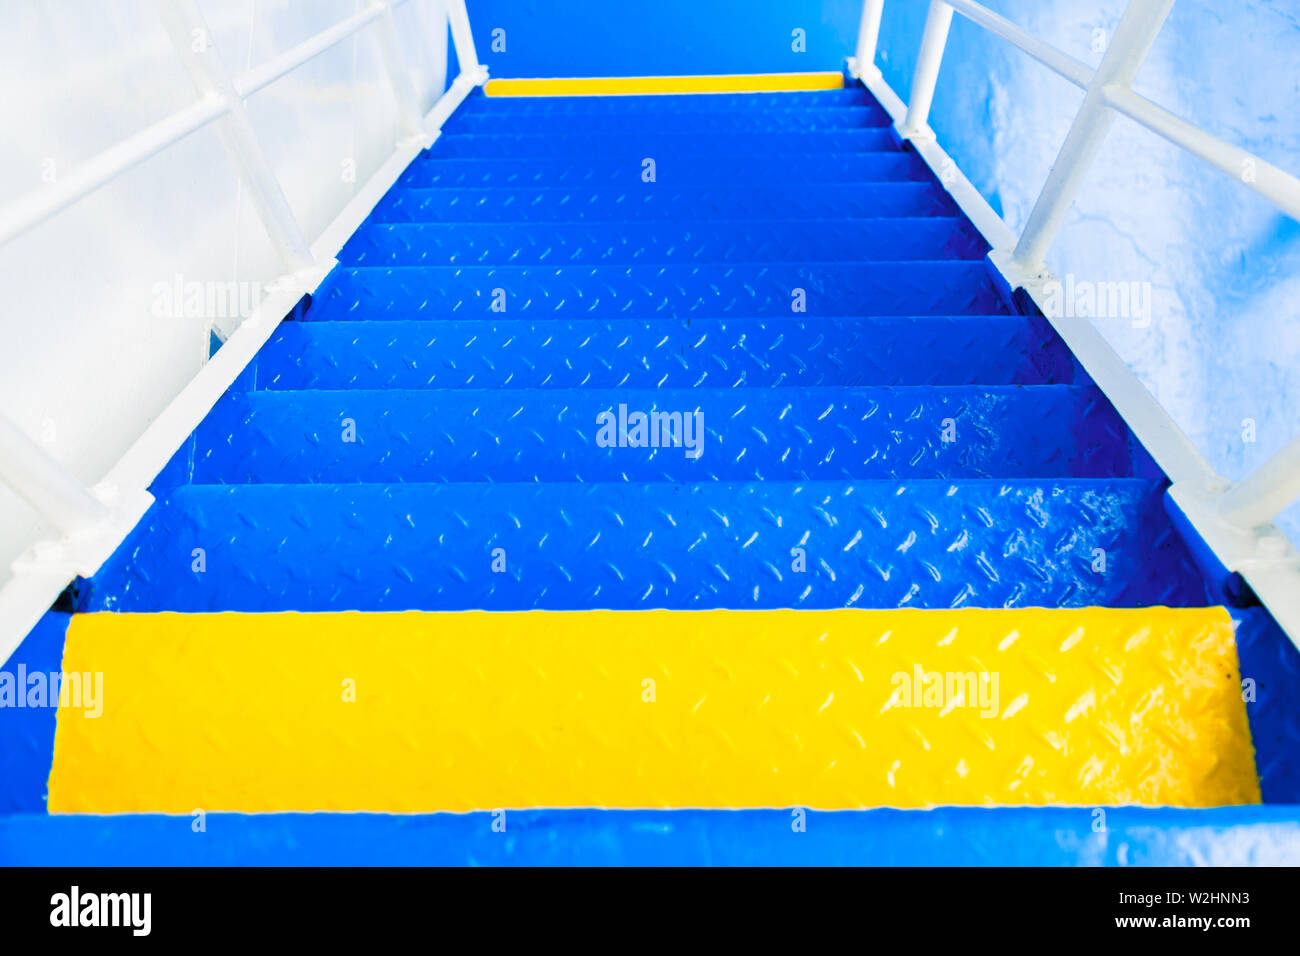 Cruise ship stairs - Stock Image